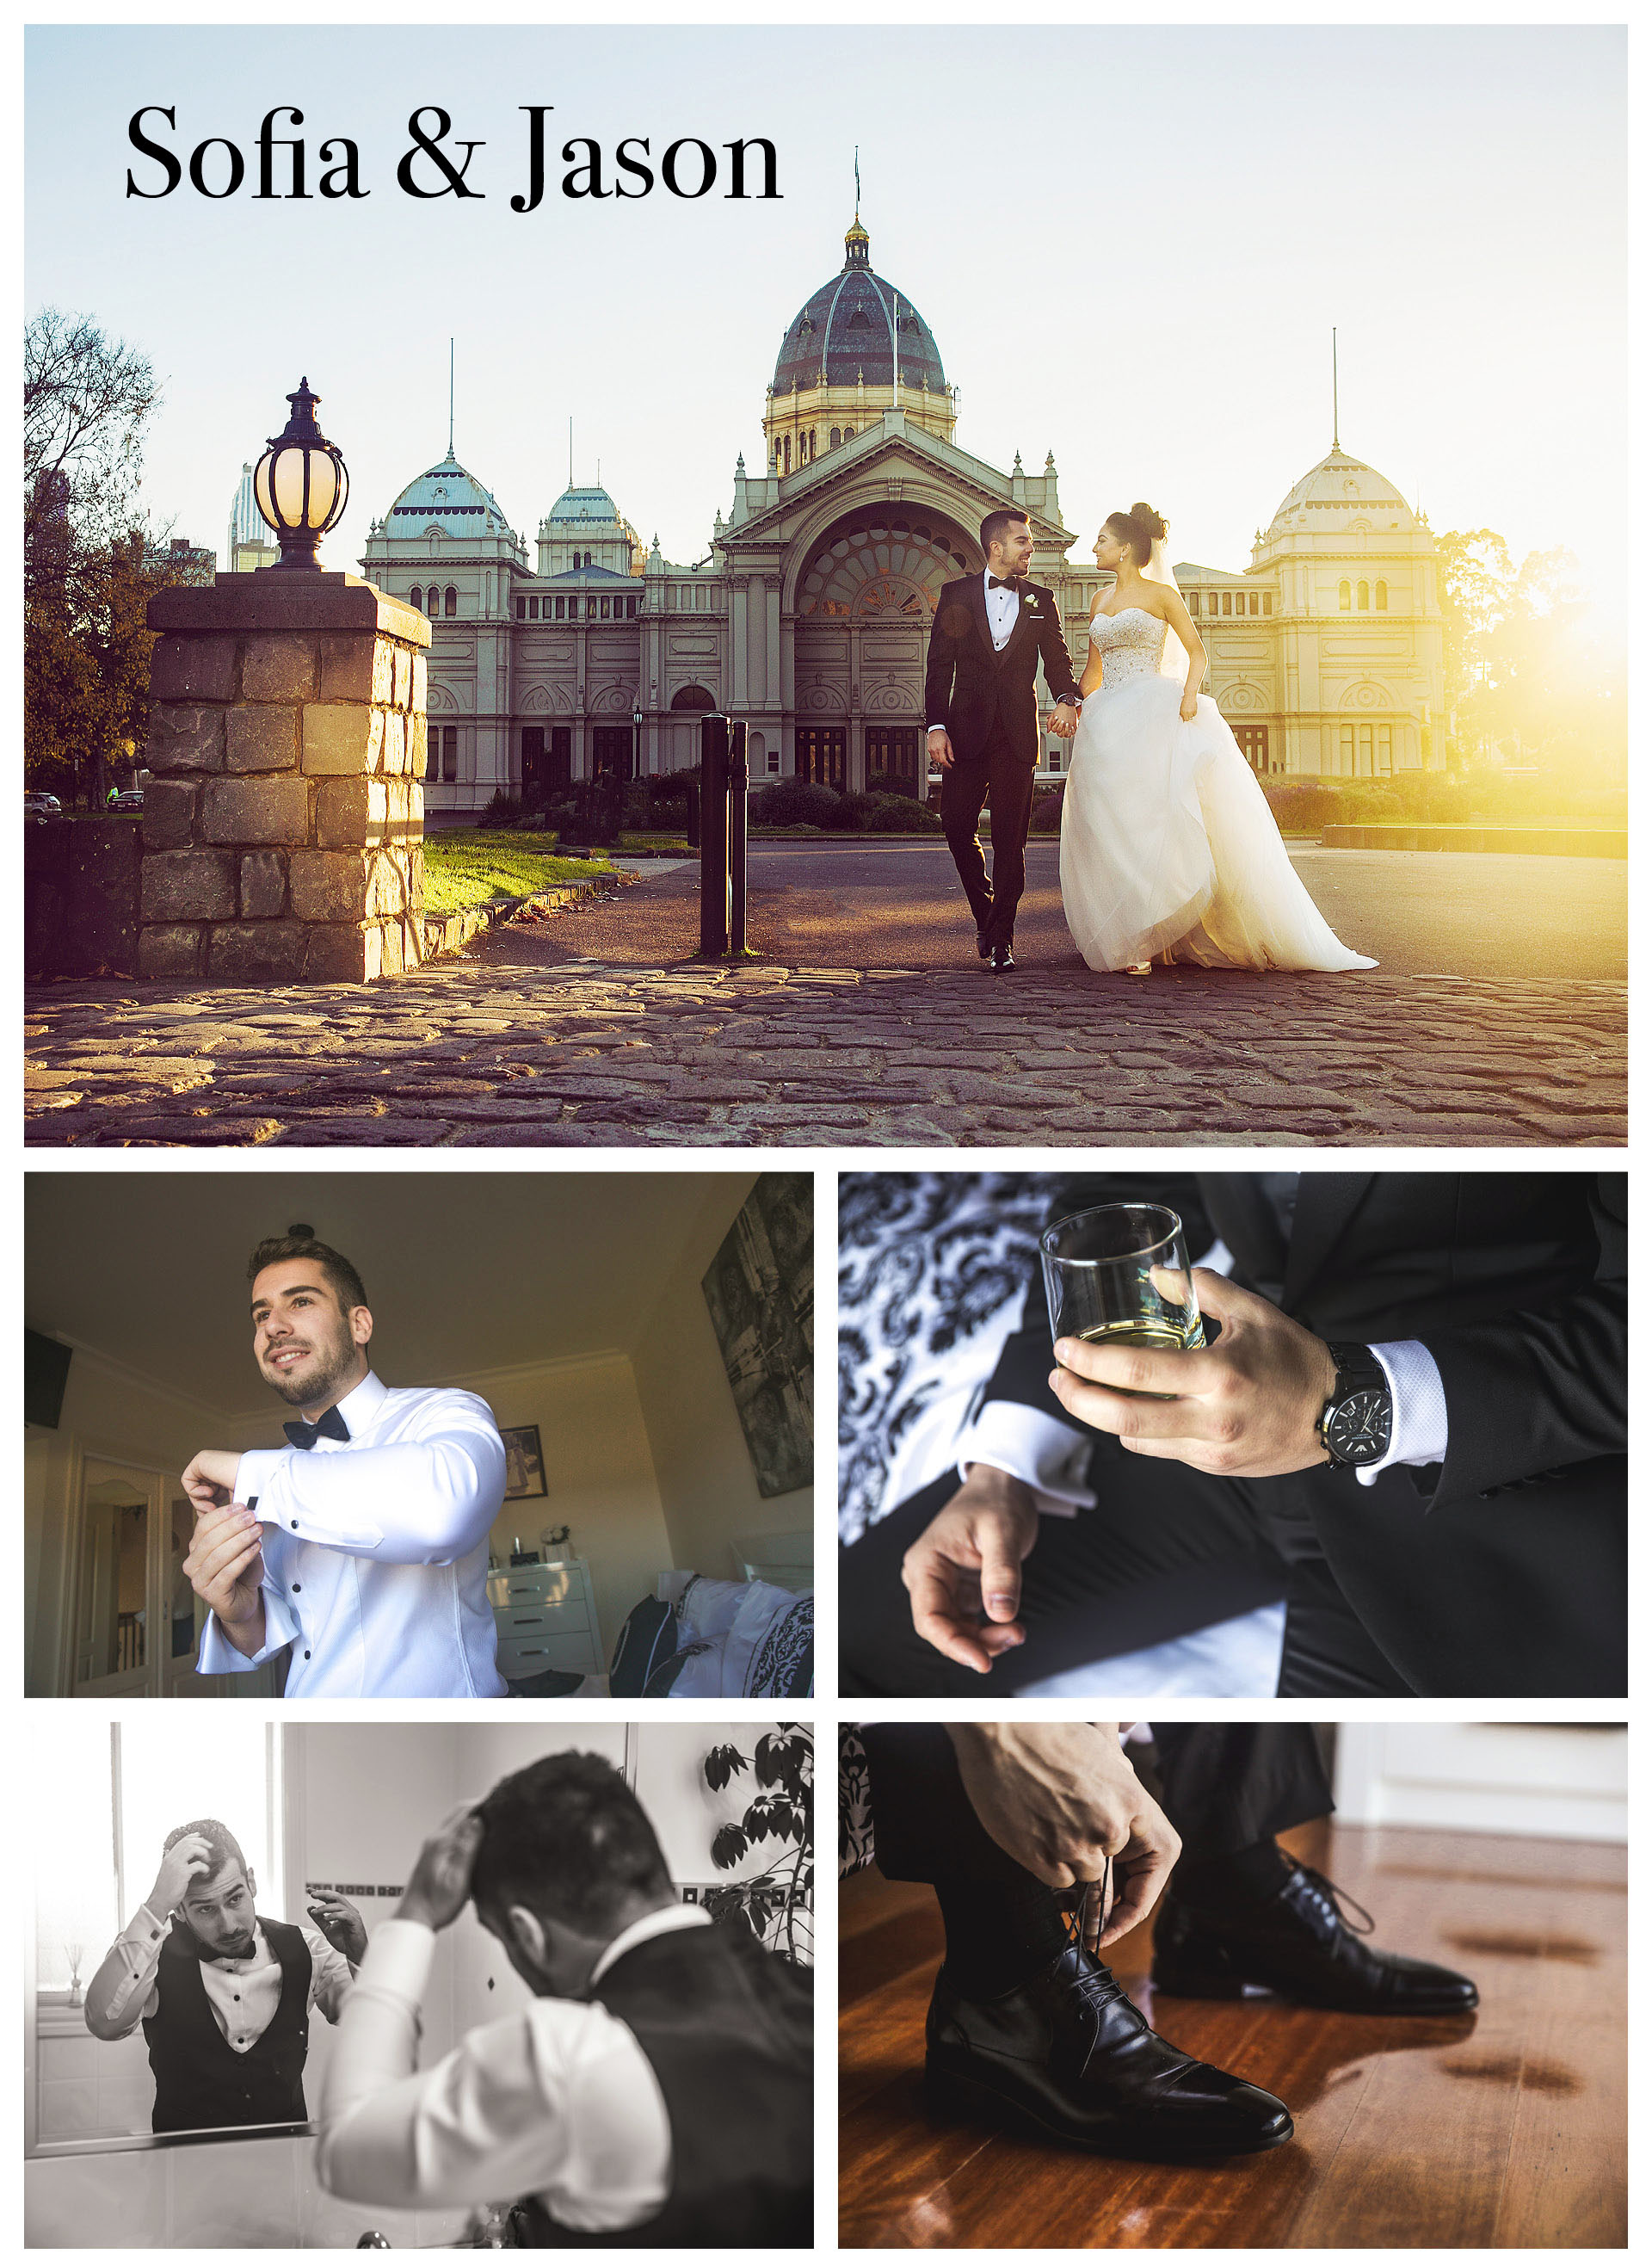 Bride and groom take wedding photos in the front of royal exhibition building at sunset